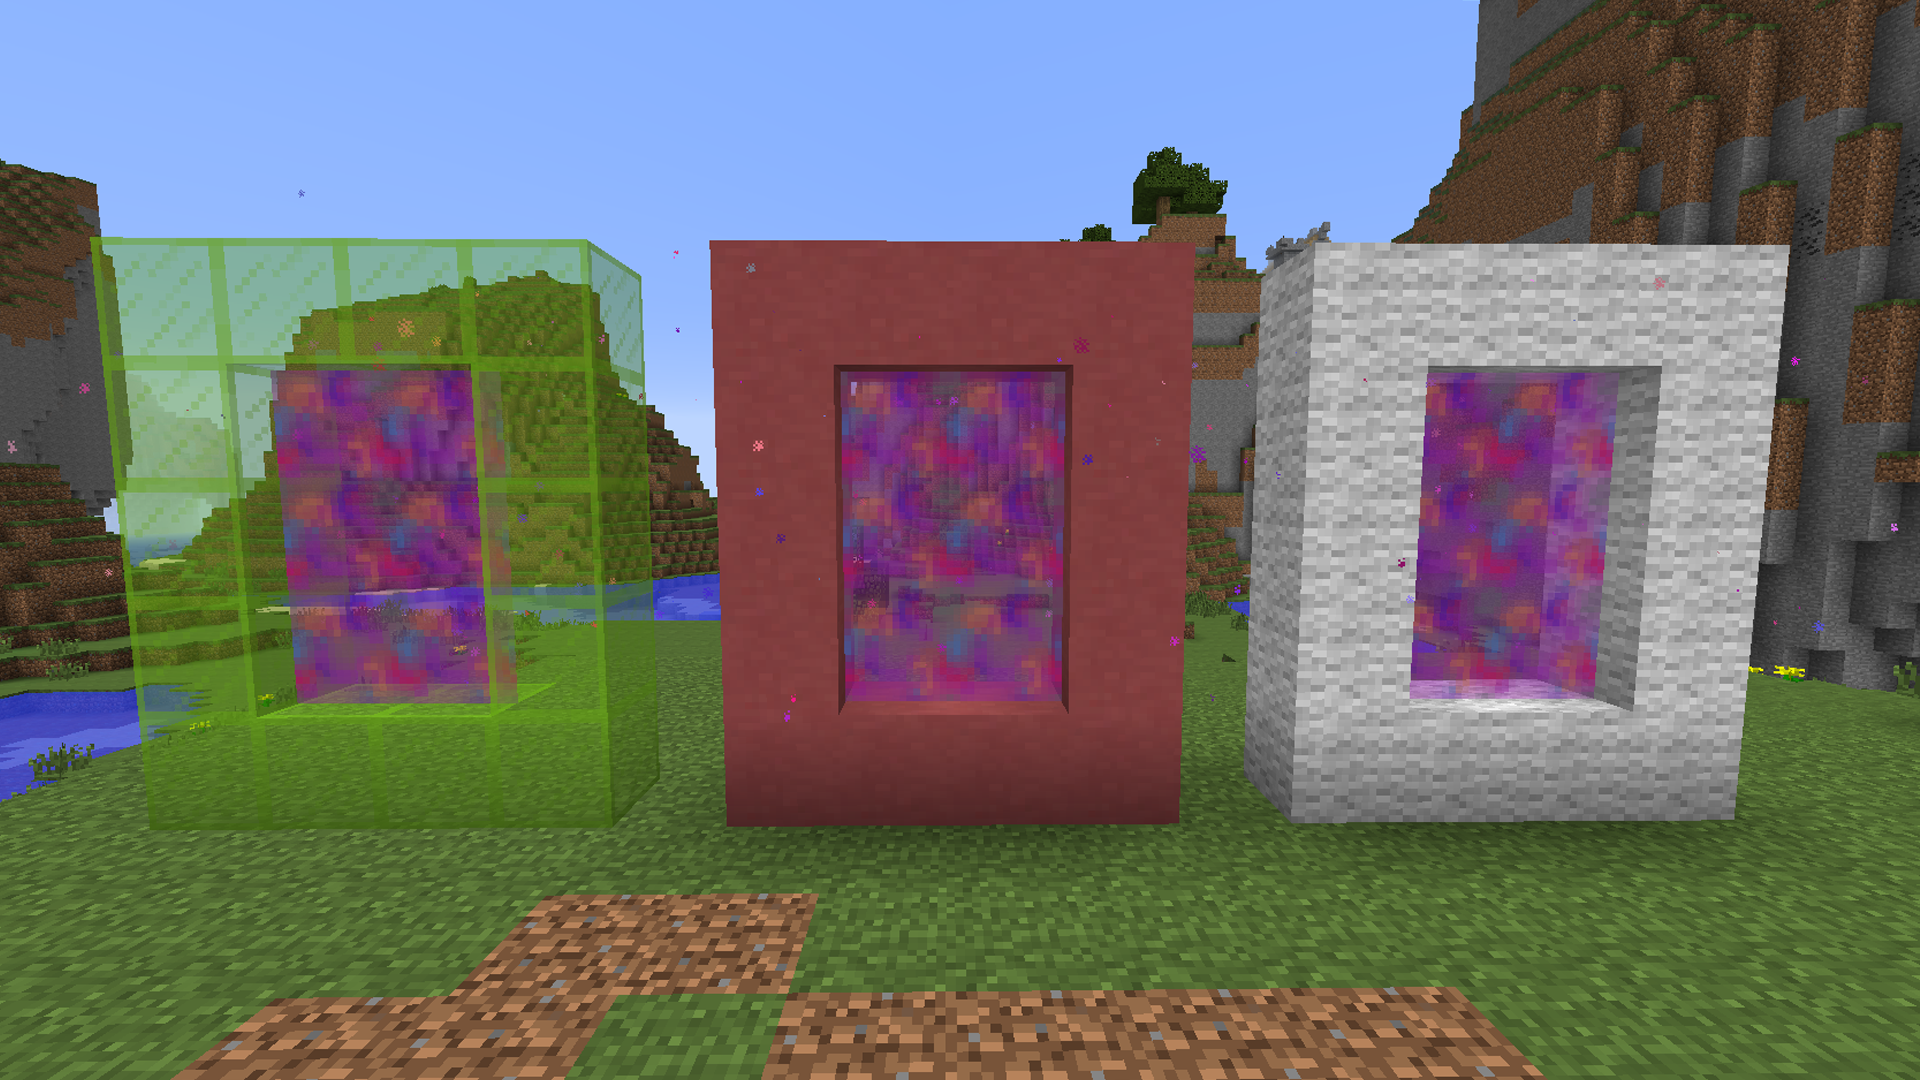 Colourful Portals Minecraft Mods